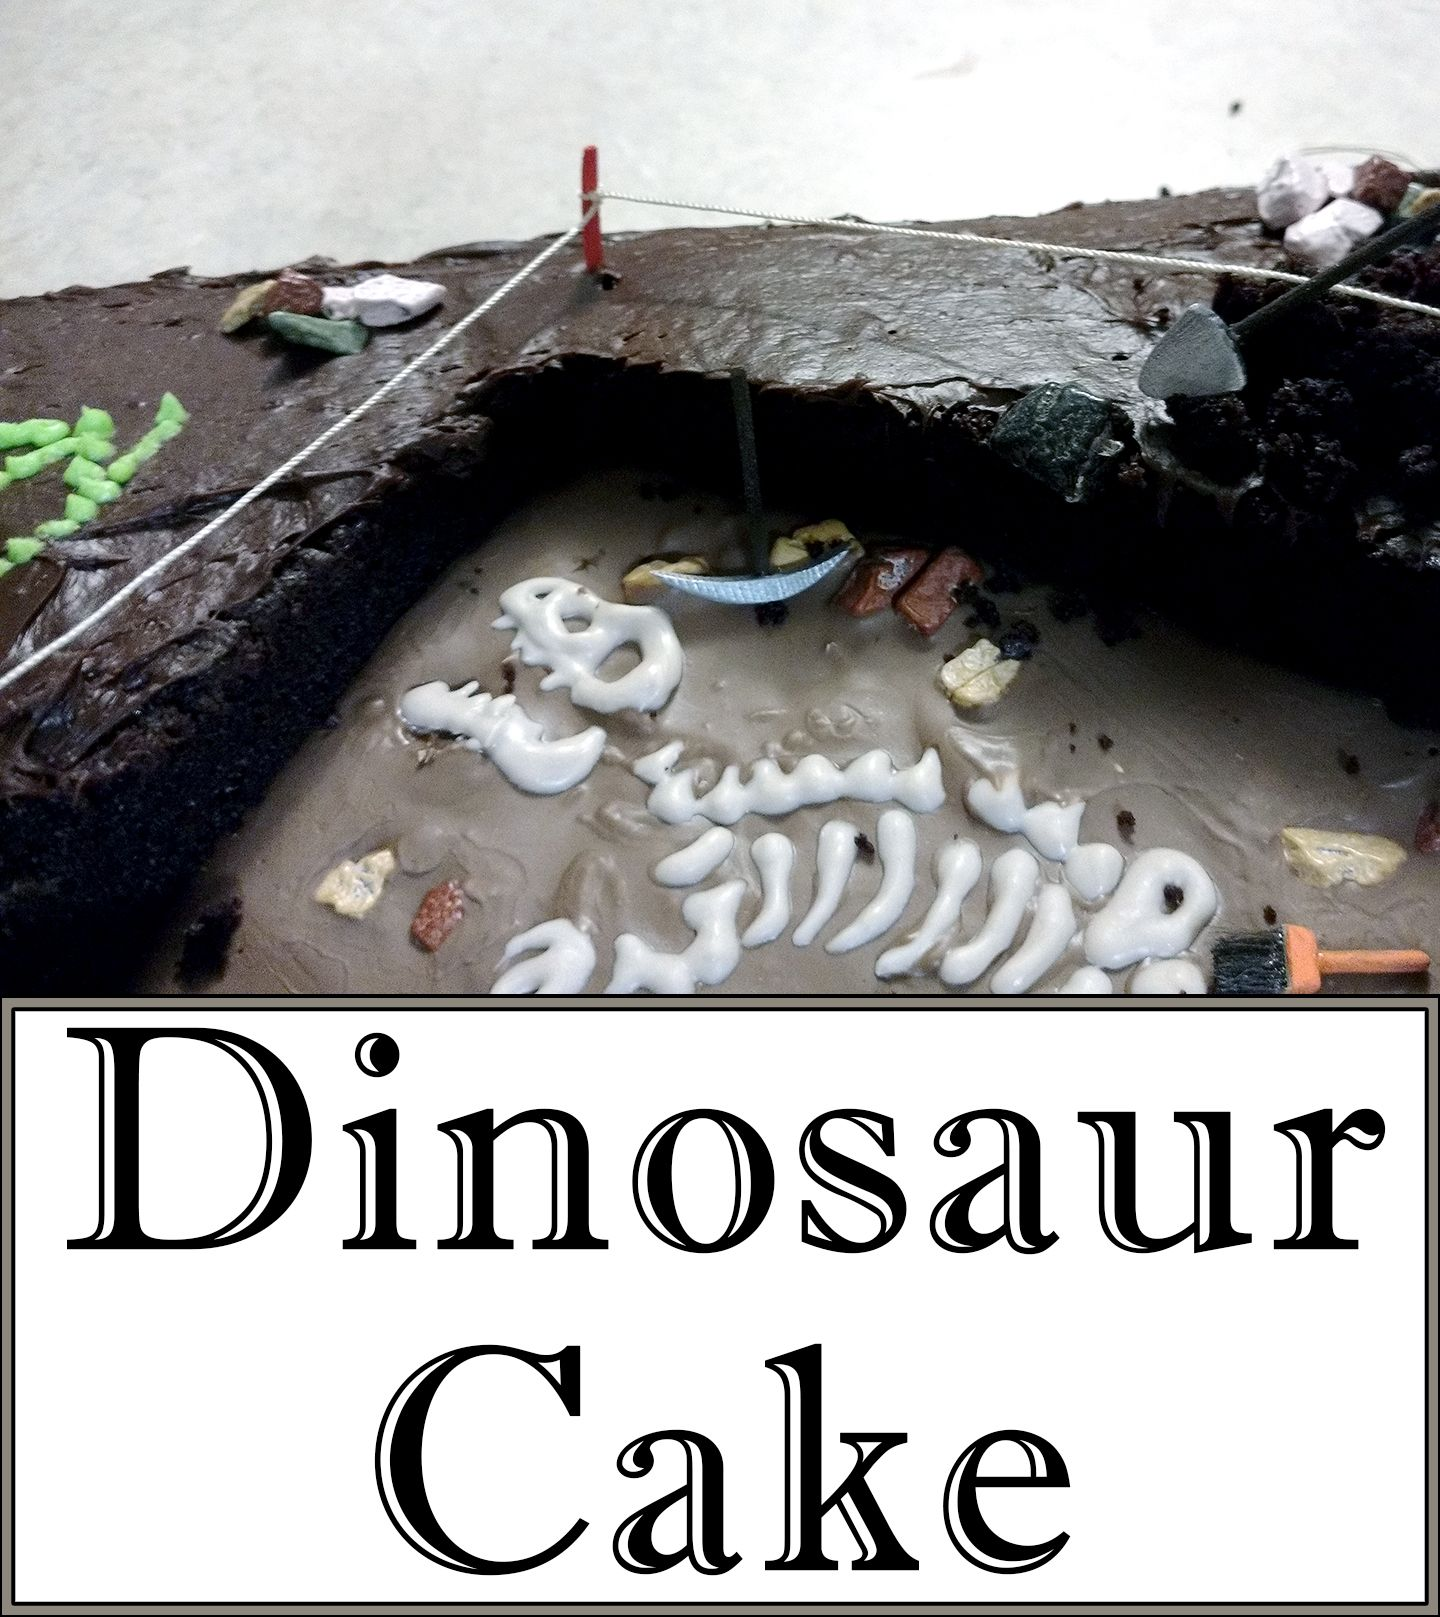 The perfect cake for a budding scientist or dinosaur enthusiast!